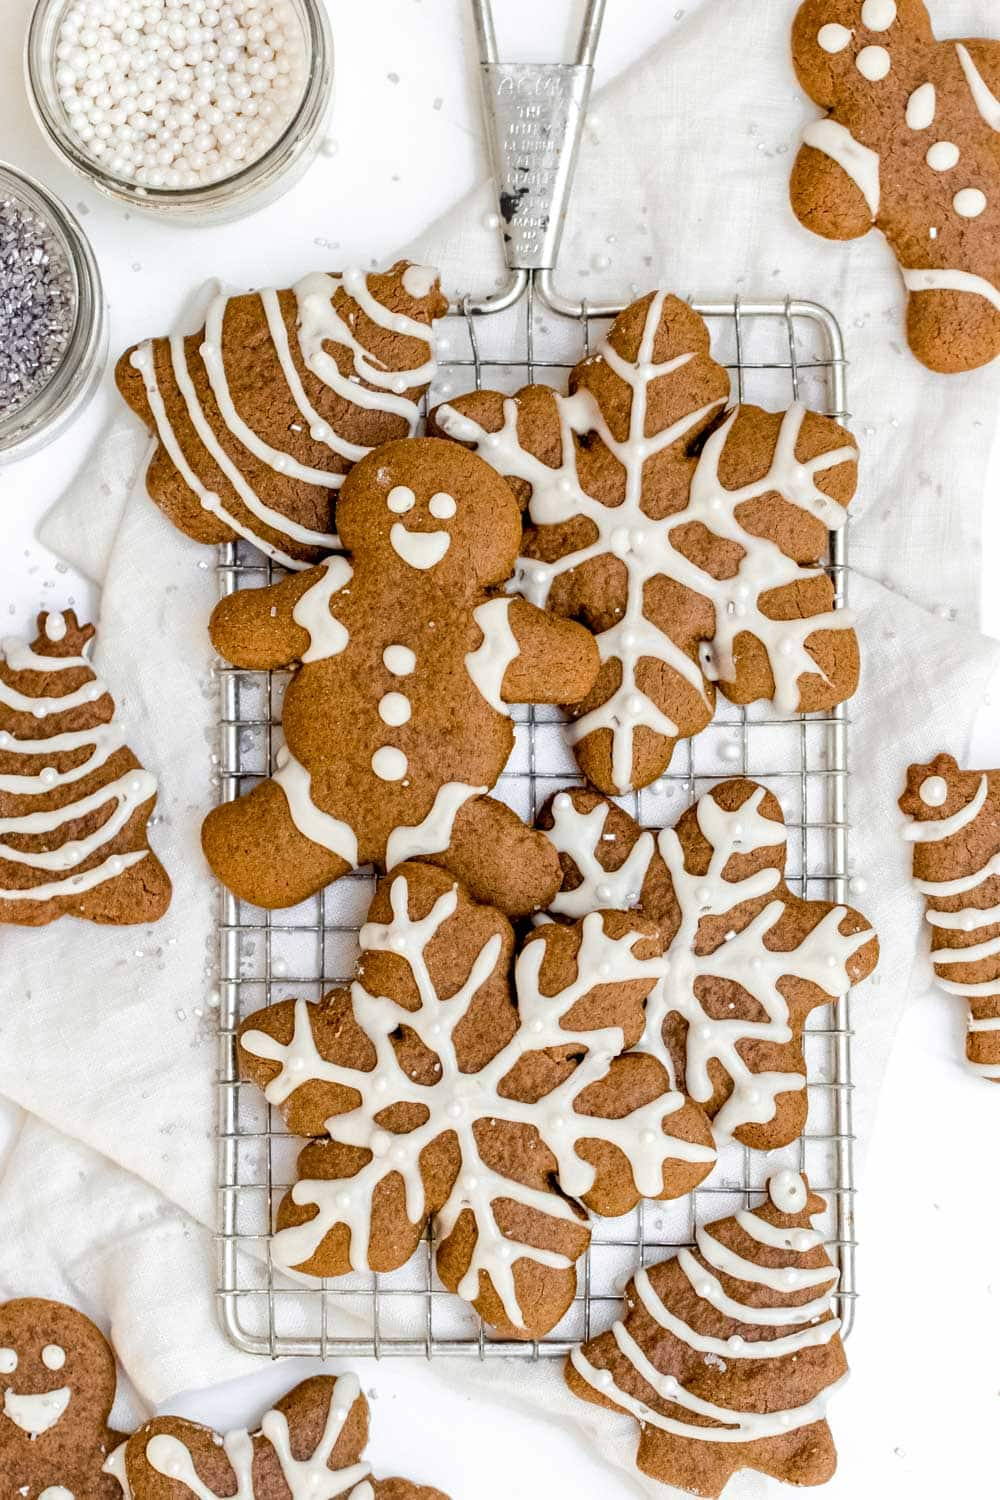 Healthy gingerbread cookies men and snowflakes with icing.